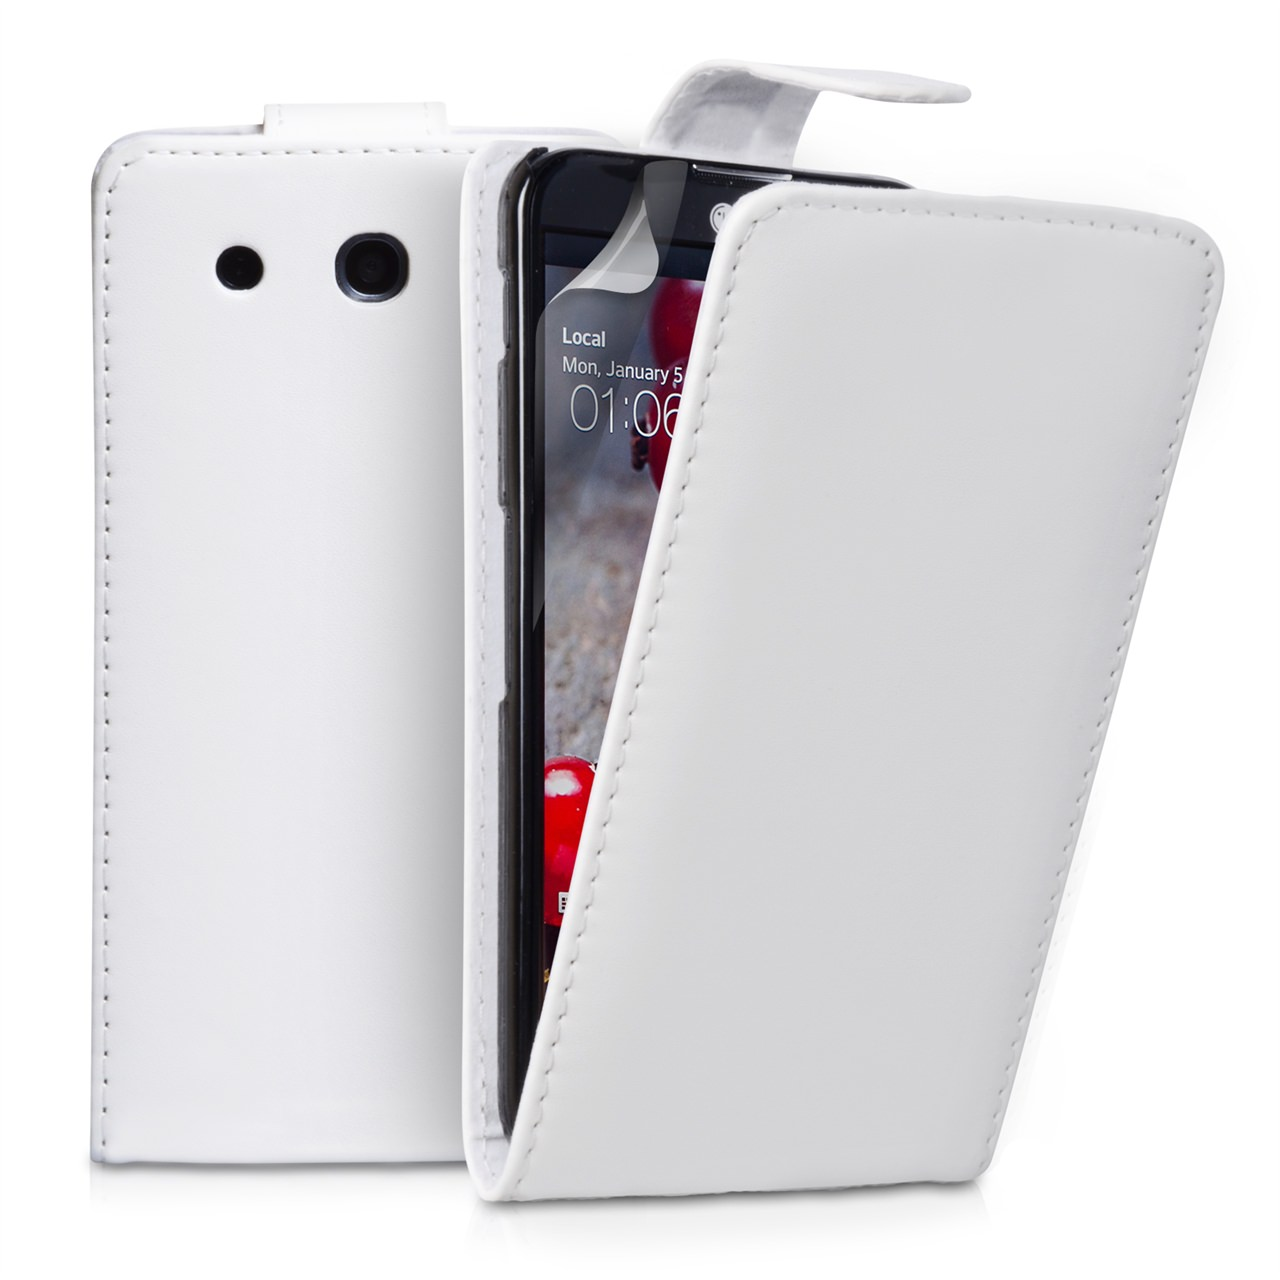 YouSave Accessories LG G Pro Leather Effect Flip Case - White